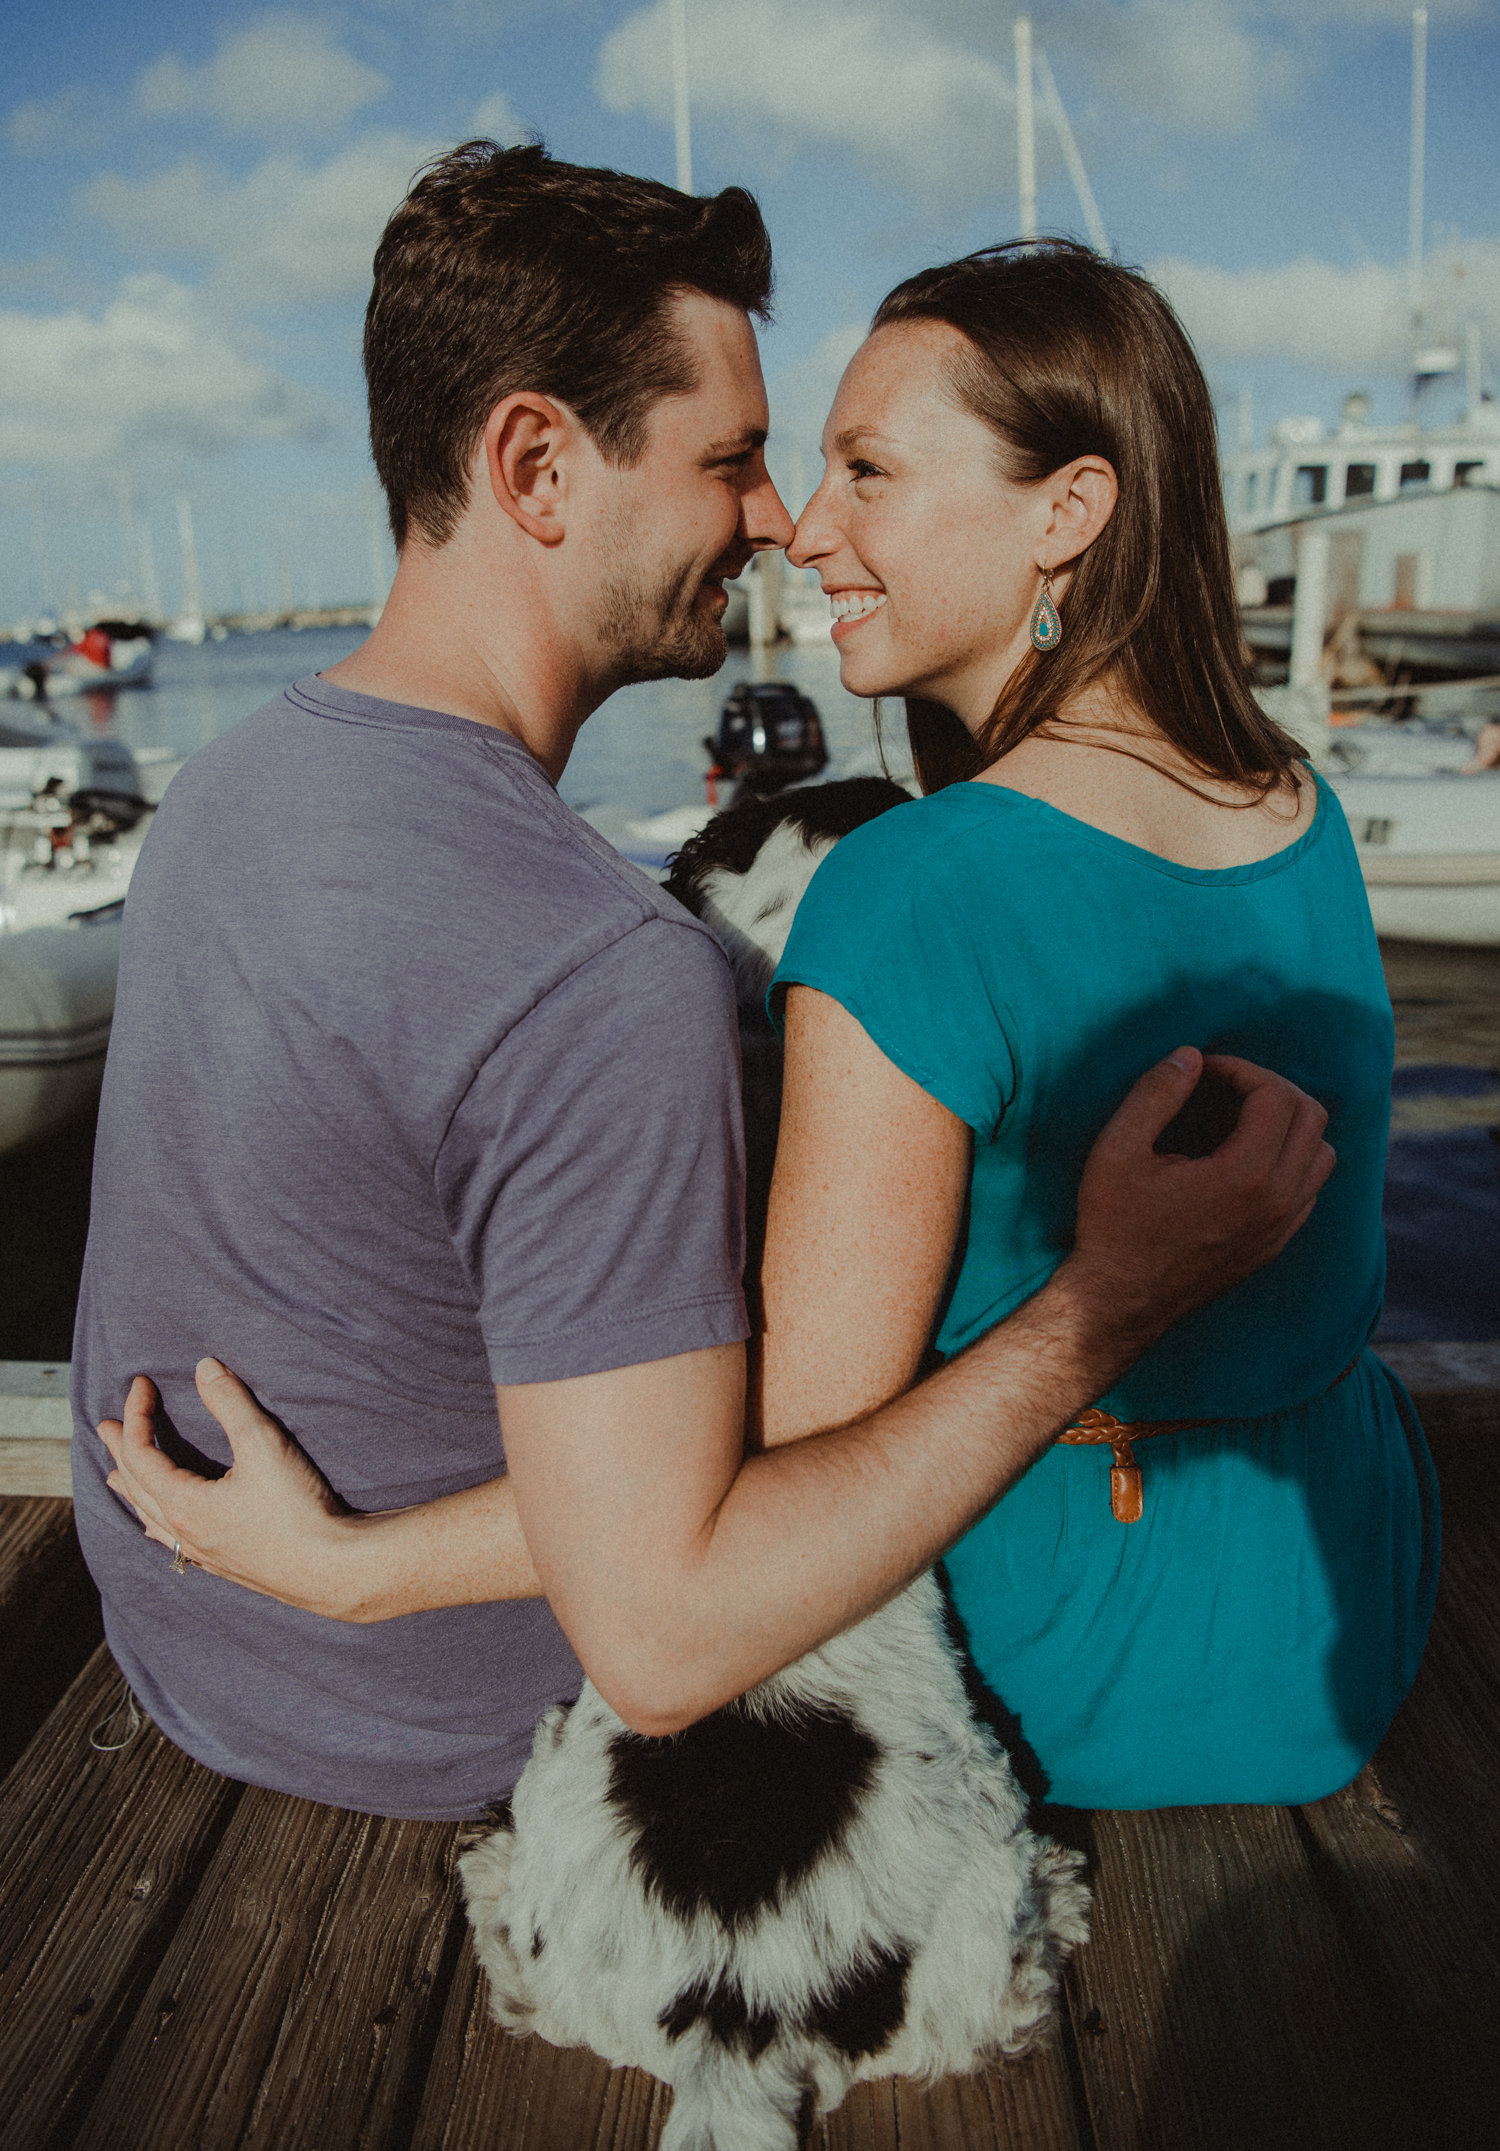 engagement_session_marthas_vineyard_DSC_5053.jpg